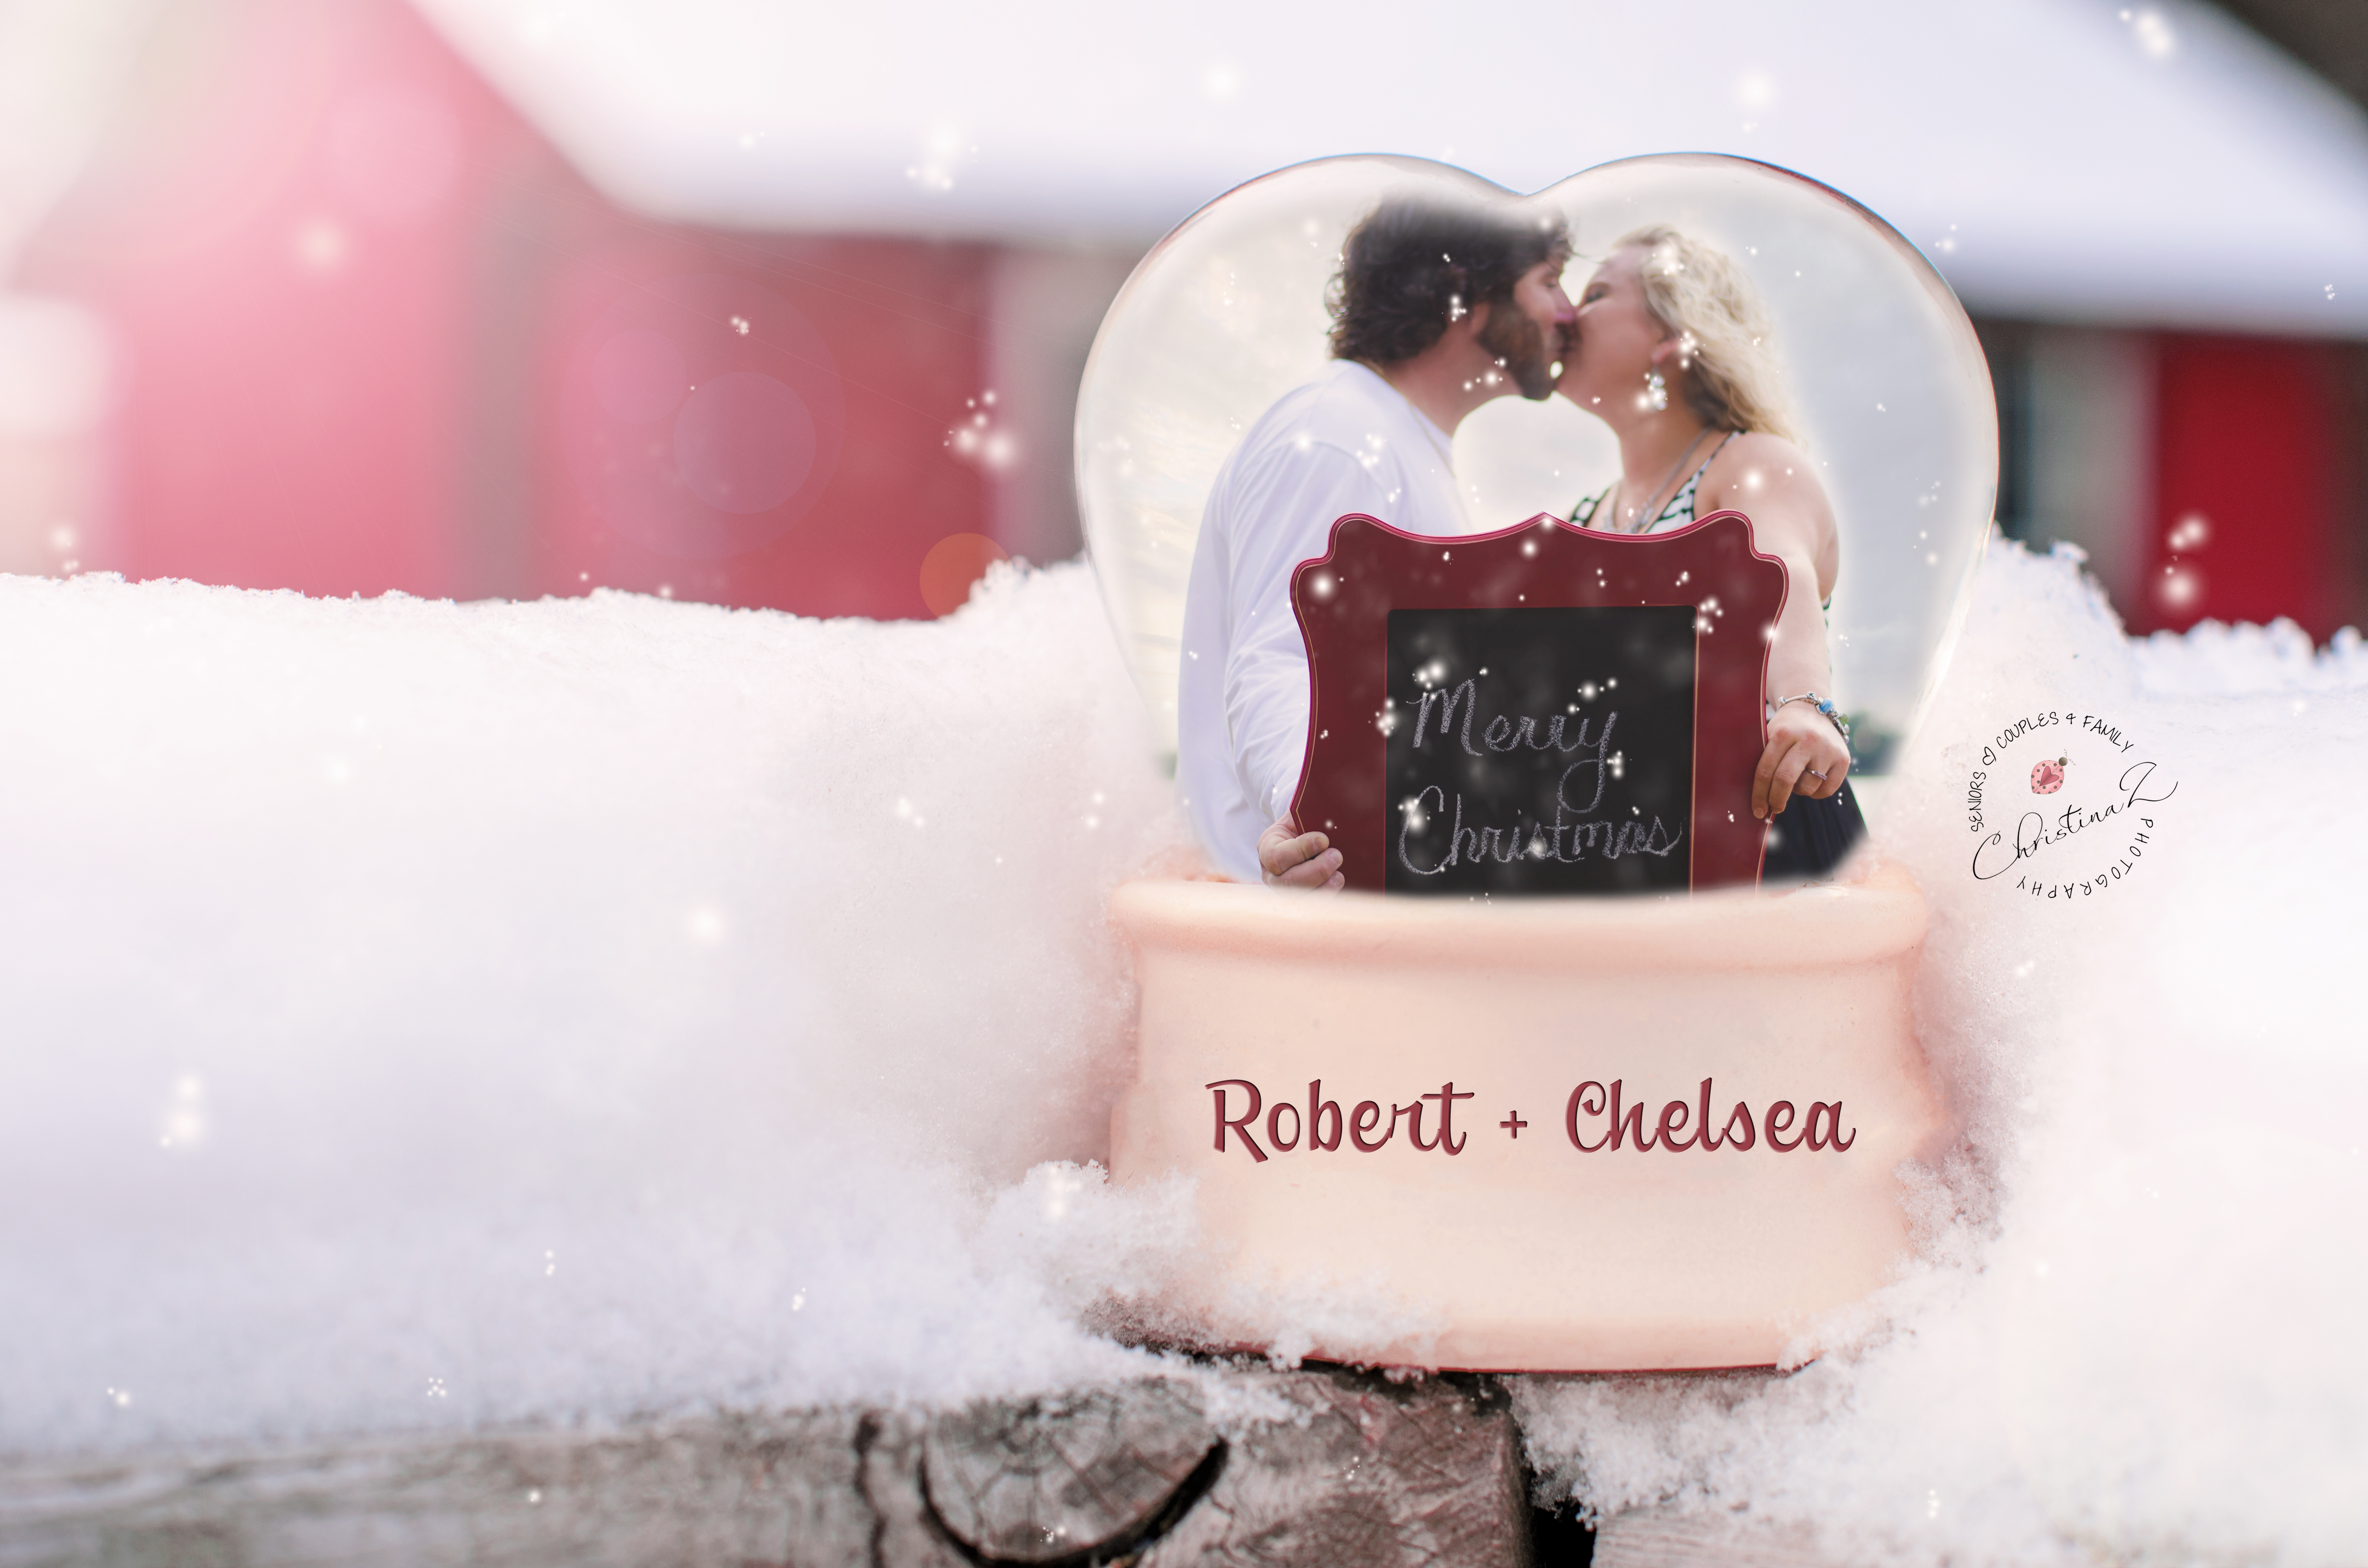 Robert + Chelsea | Couples Holiday Photography in Snow Globe | Christina Z Photography © 2013 - Bradenton, FL